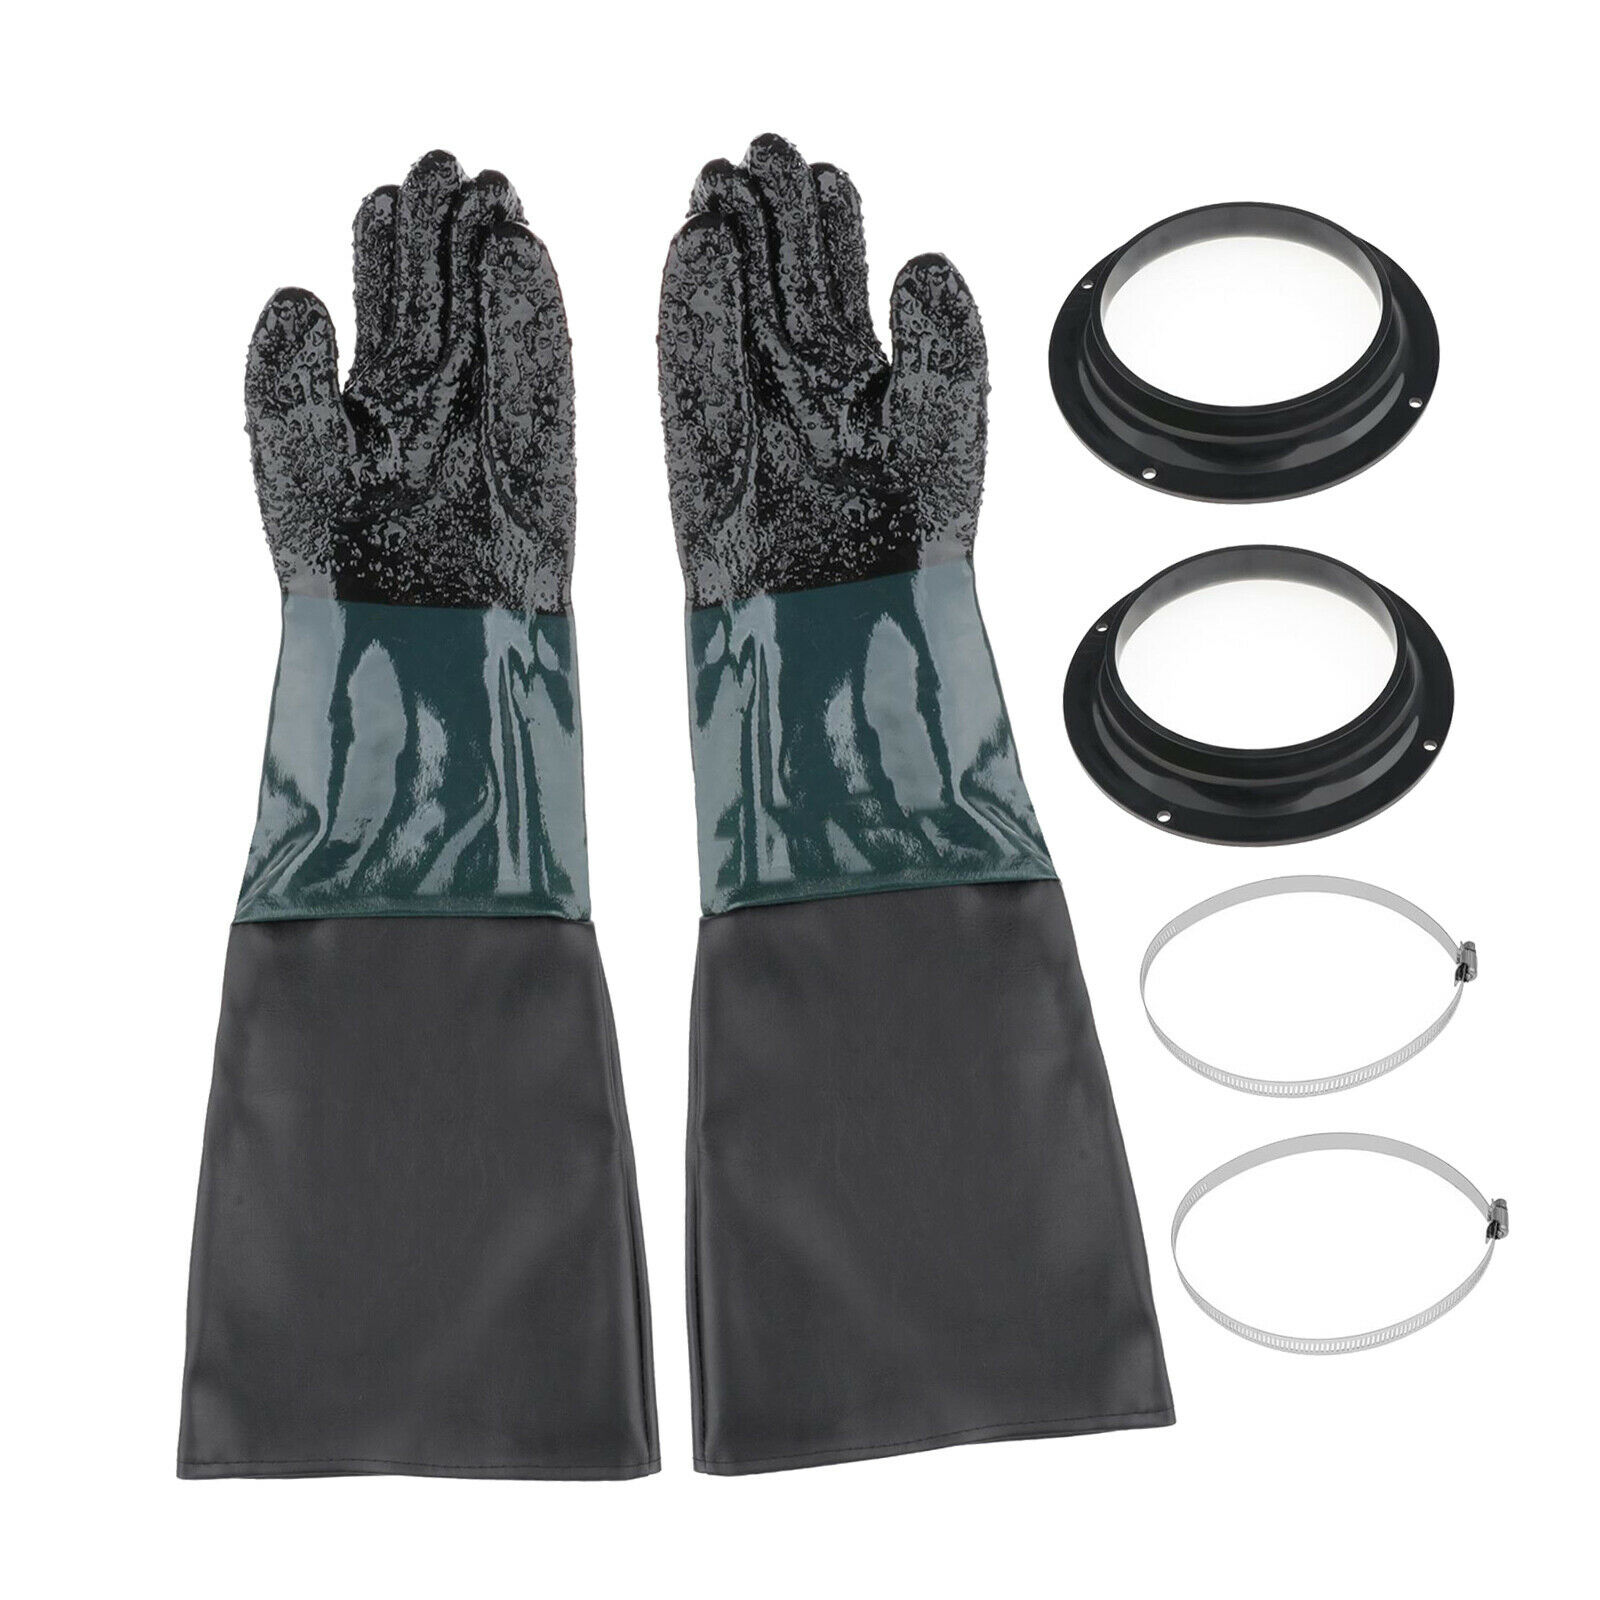 1 Pair of Heavy-duty 24'' Sandblasting Gloves Replacement Labour for Cabinet